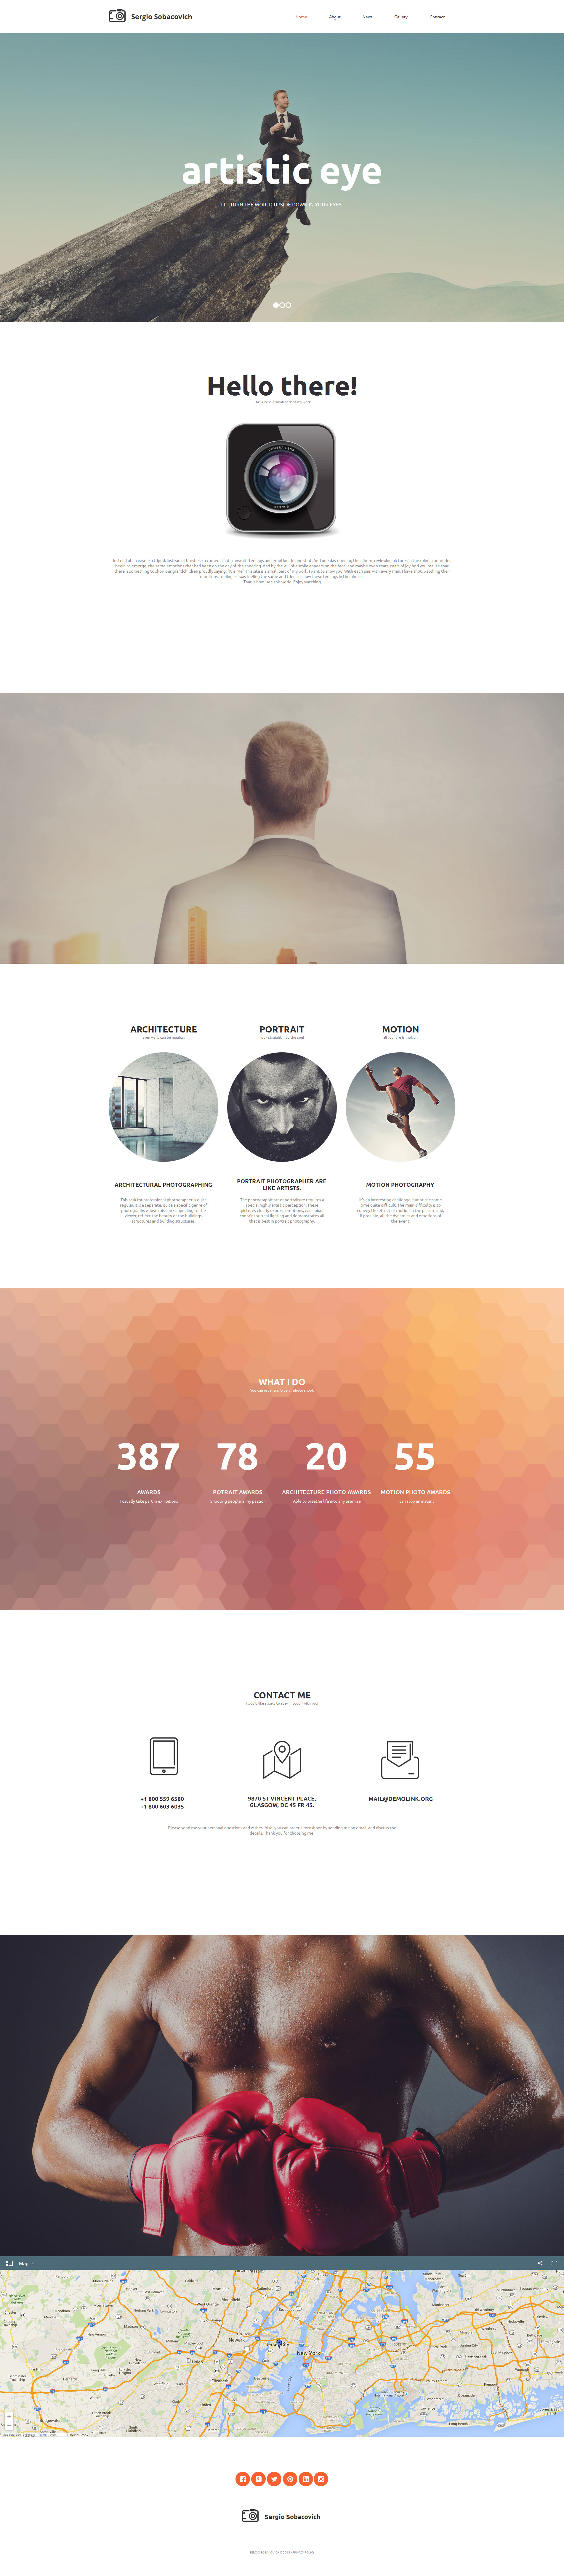 Photographer Portfolio Moto CMS HTML Template - screenshot